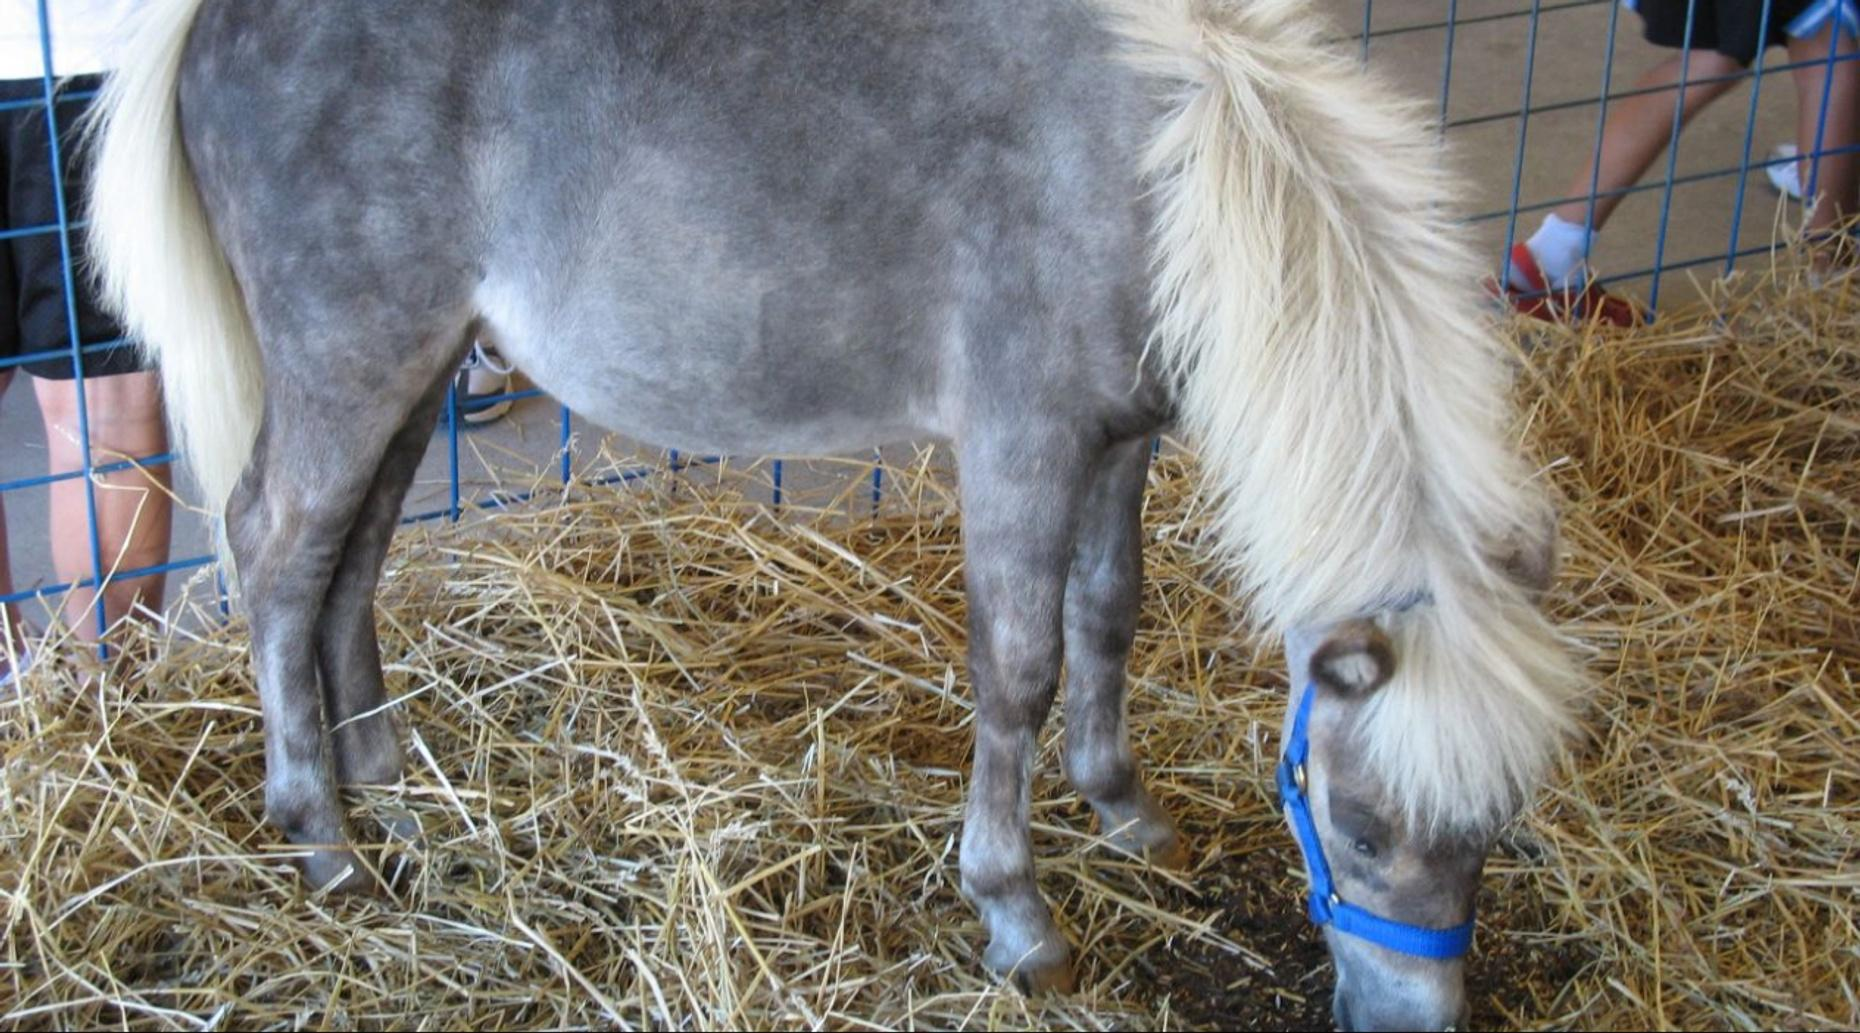 Tour of Petting Zoo with Pony Rides in Redmond